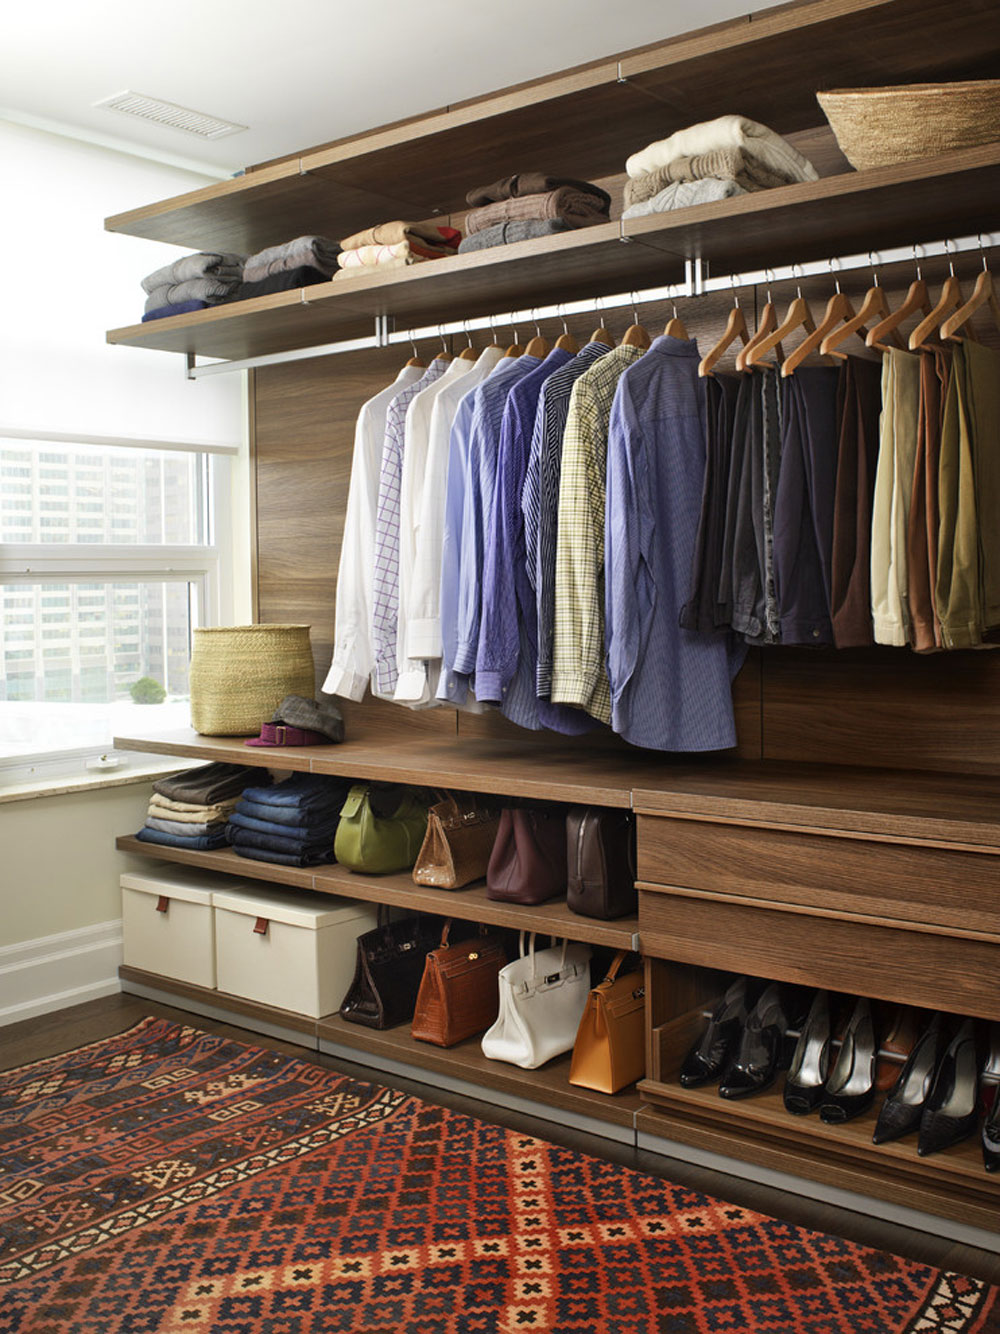 74 design ideas for the master bedroom closet